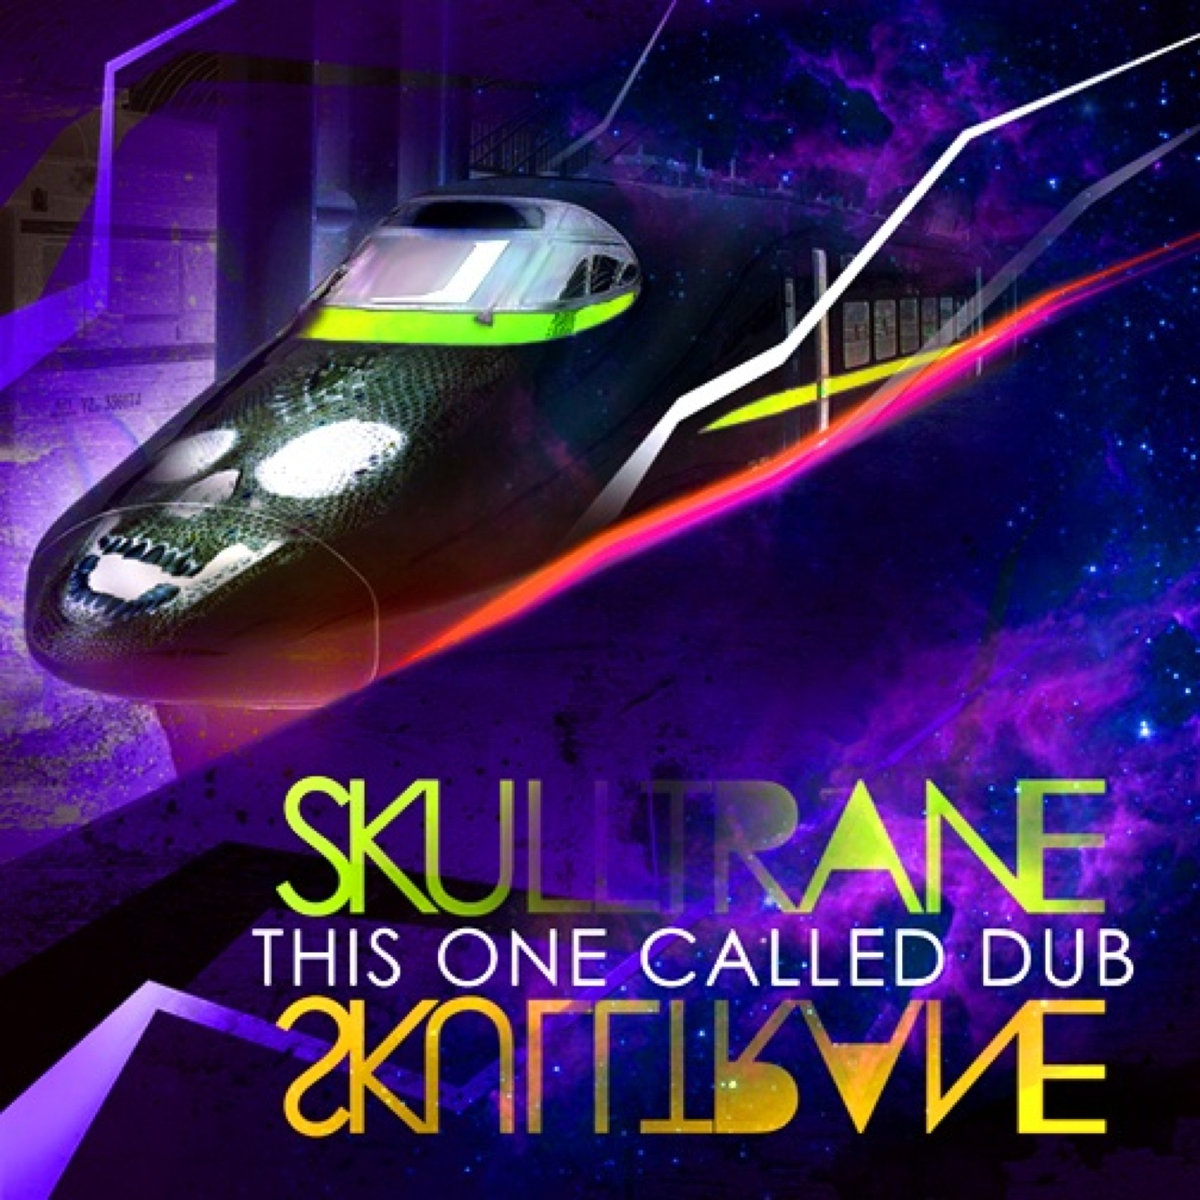 Skulltrane - This One Called Dub (HD4000 Remix) @ 'This One Called Dub' album (electronic, dubstep)